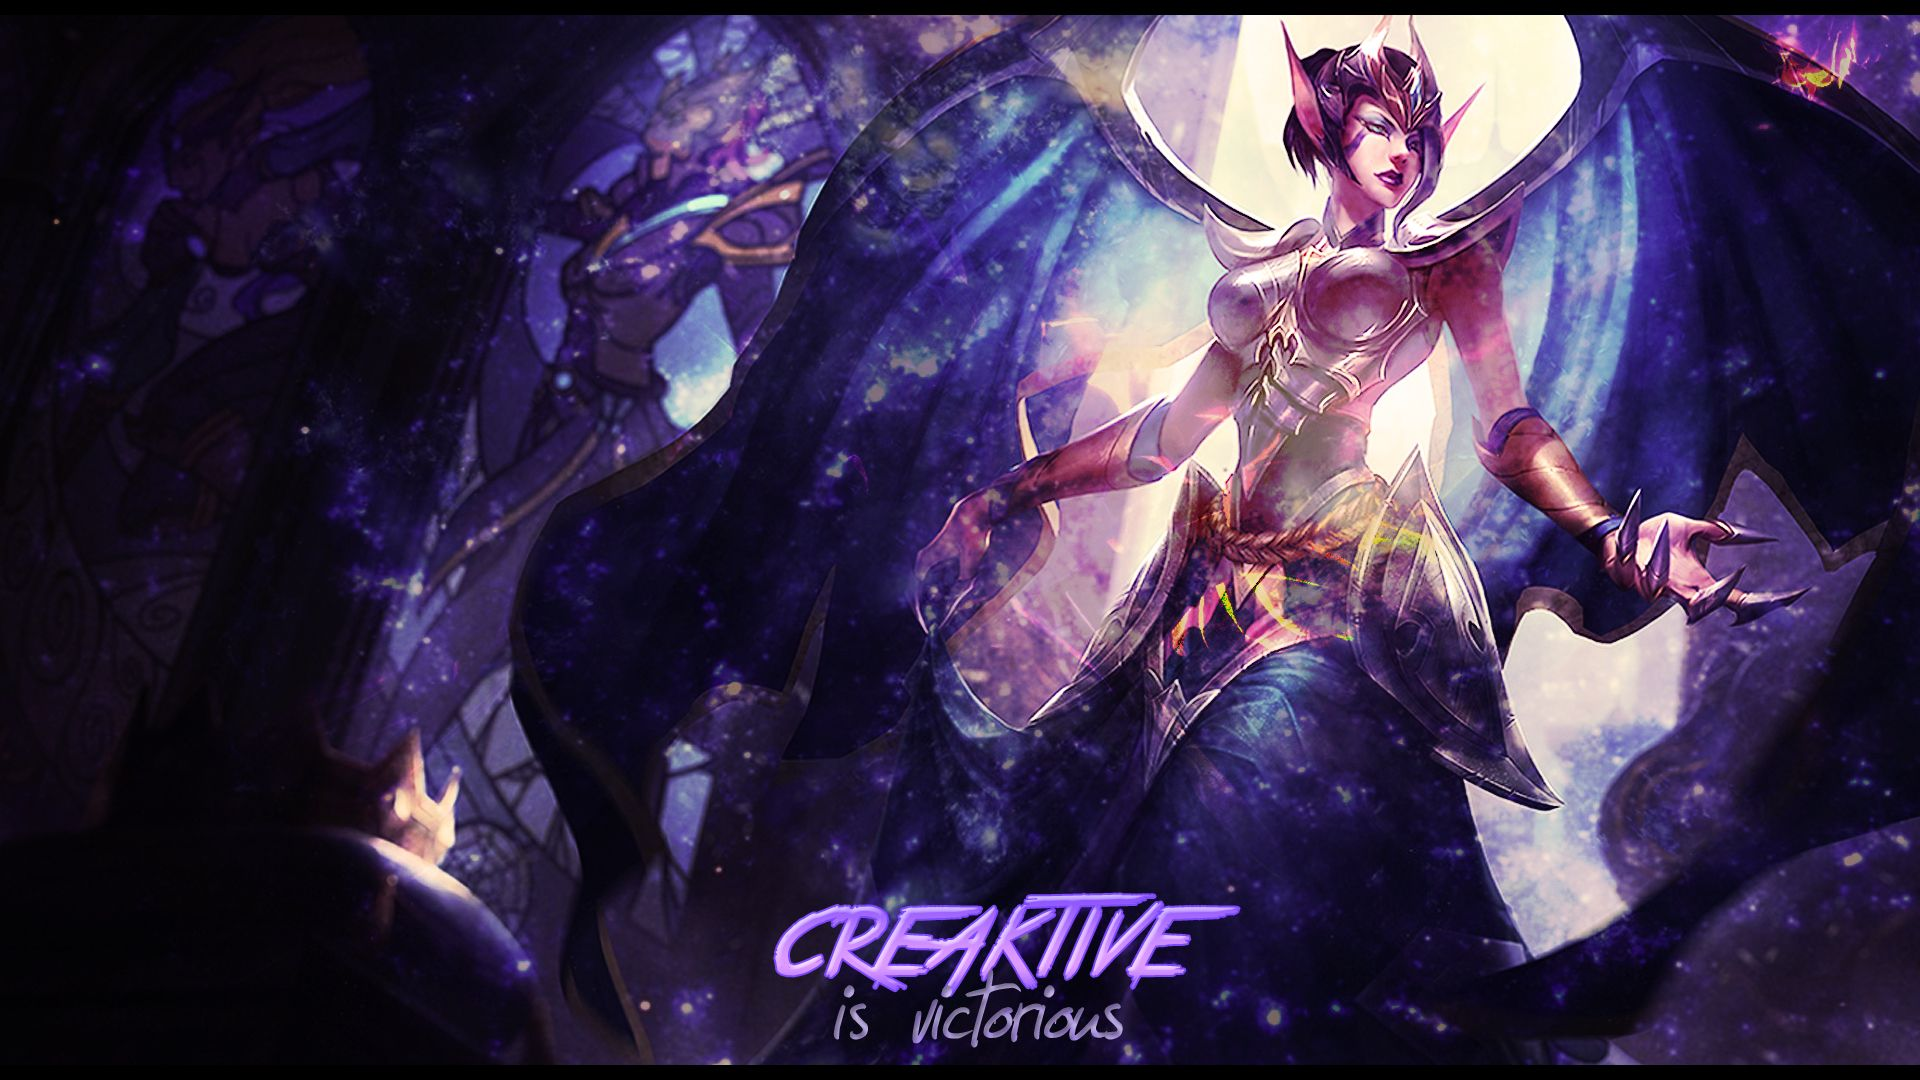 Morgana Victorious Victorious Morgana Splash Art Edited By Creaktivedesigns Art Girl Art League Of Legends